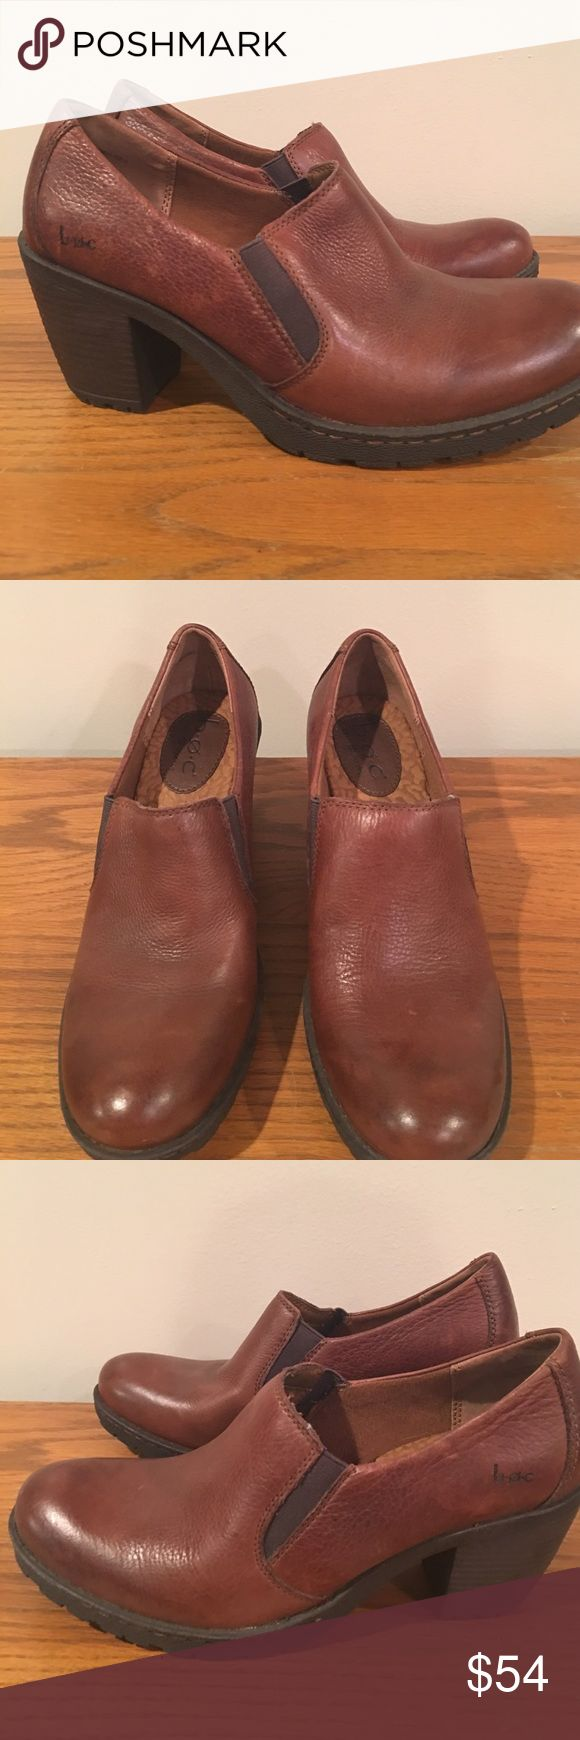 B.O.C Born Concepts brown leather ankle boots 🦉 B.O.C Born Concepts brown leather ankle boot shoes NWOB minor scuffing on right back heel of boot see pic. Never worn found in storage b.o.c. Shoes Ankle Boots & Booties